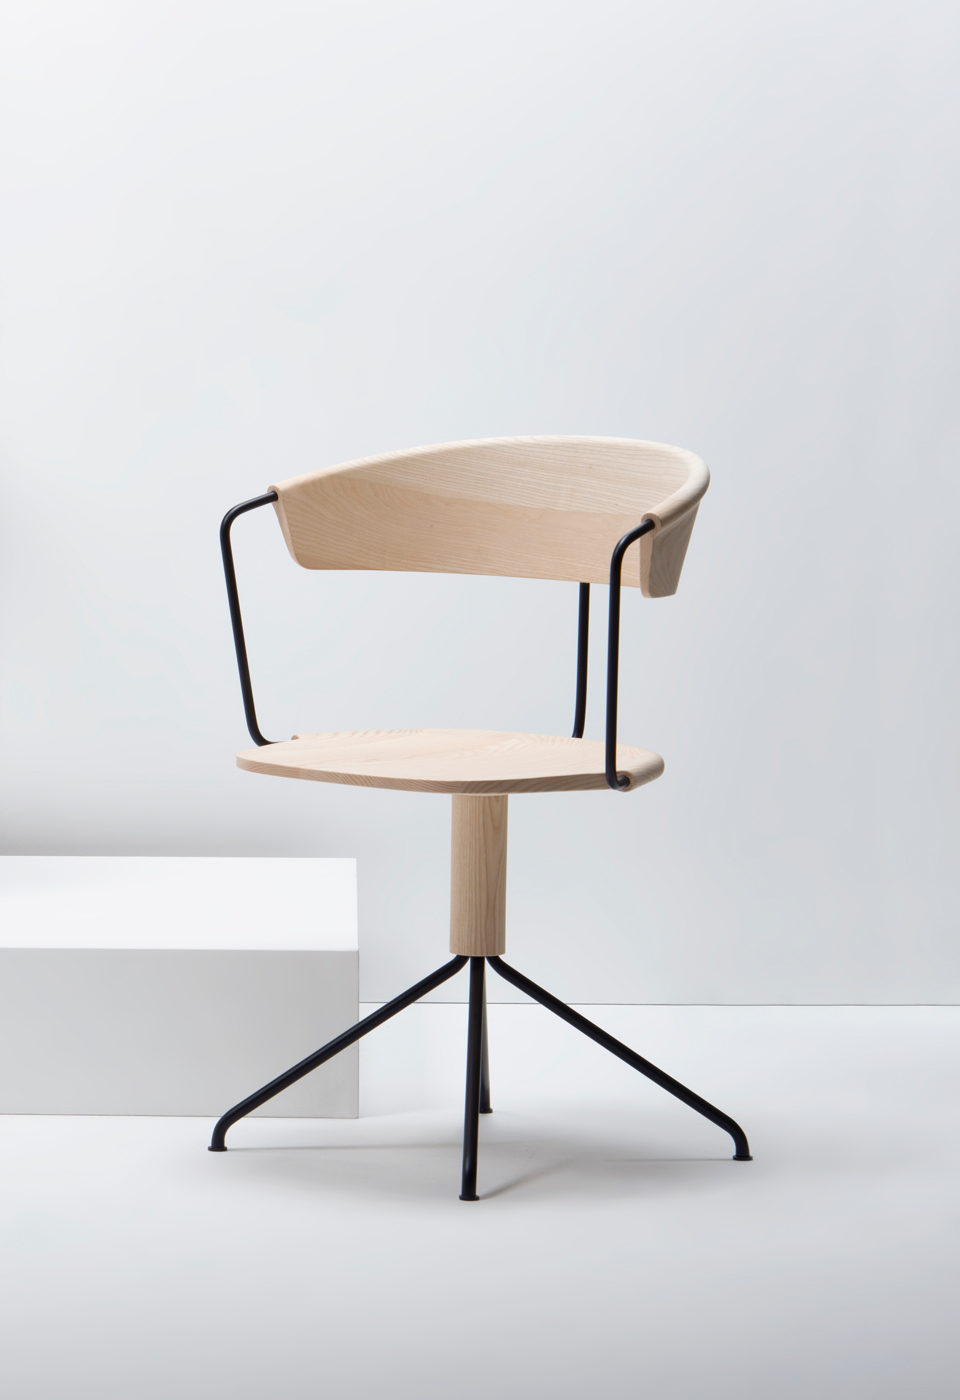 Mc9 Uncino Chair By Ronan Erwan Bouroullec For Mobilier Design Chaise Fauteuil Mobilier